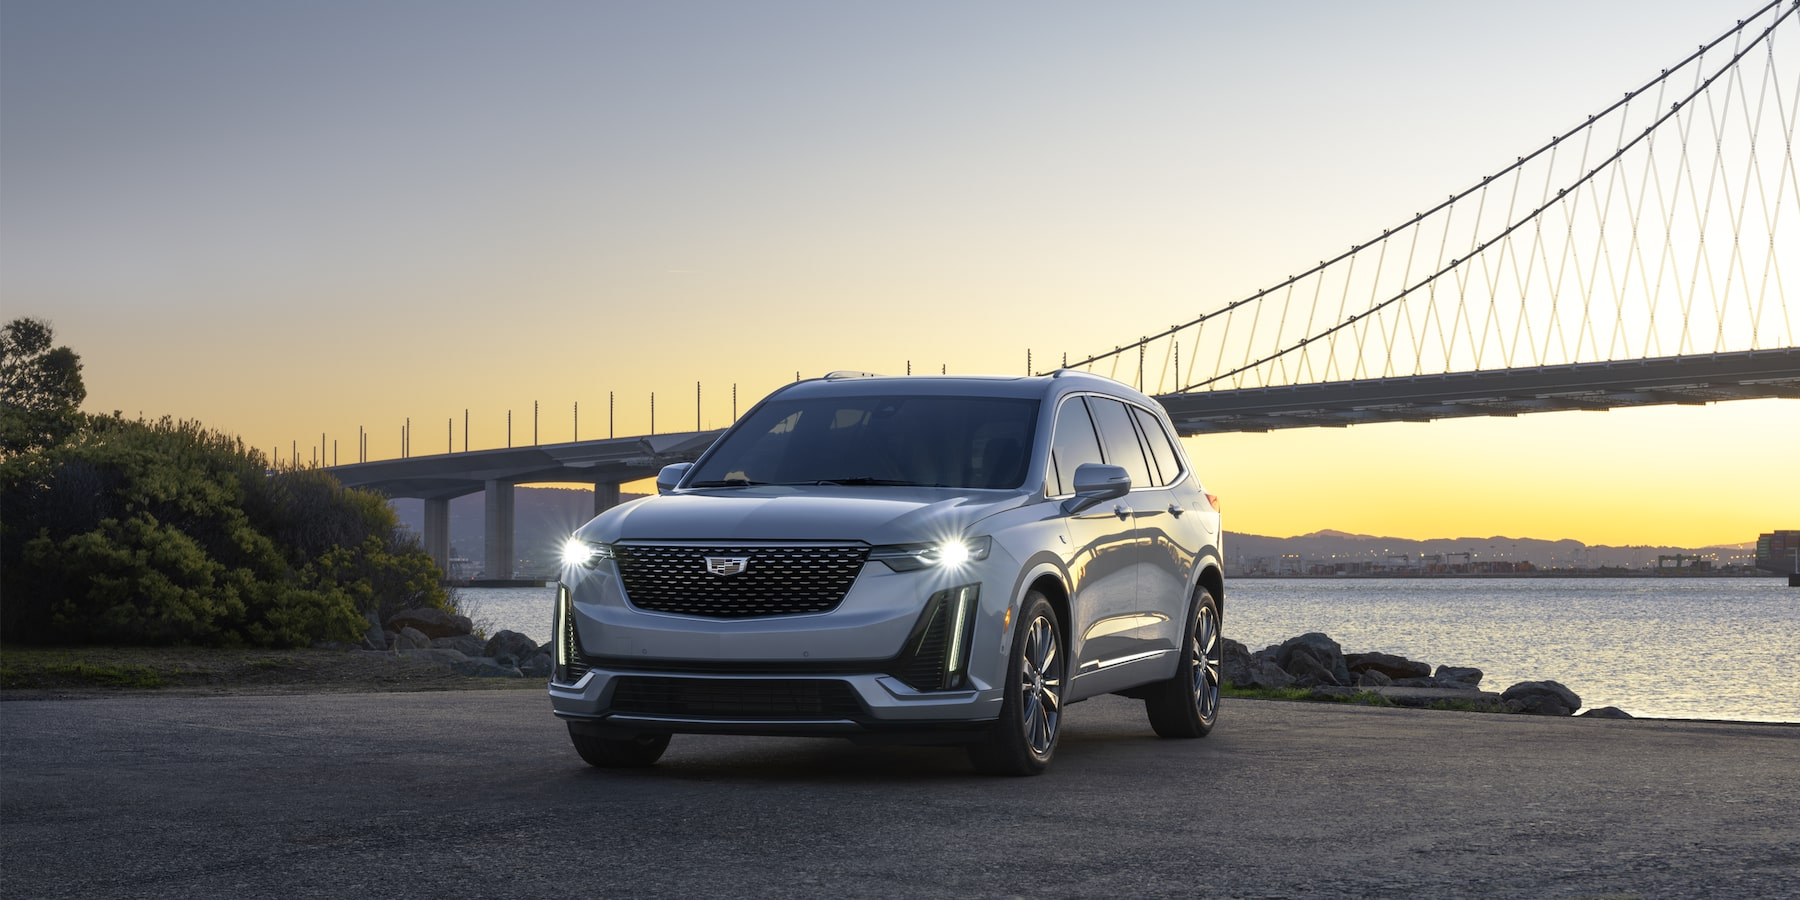 2021 Cadillac XT6 parked in front of a body of water and bridge